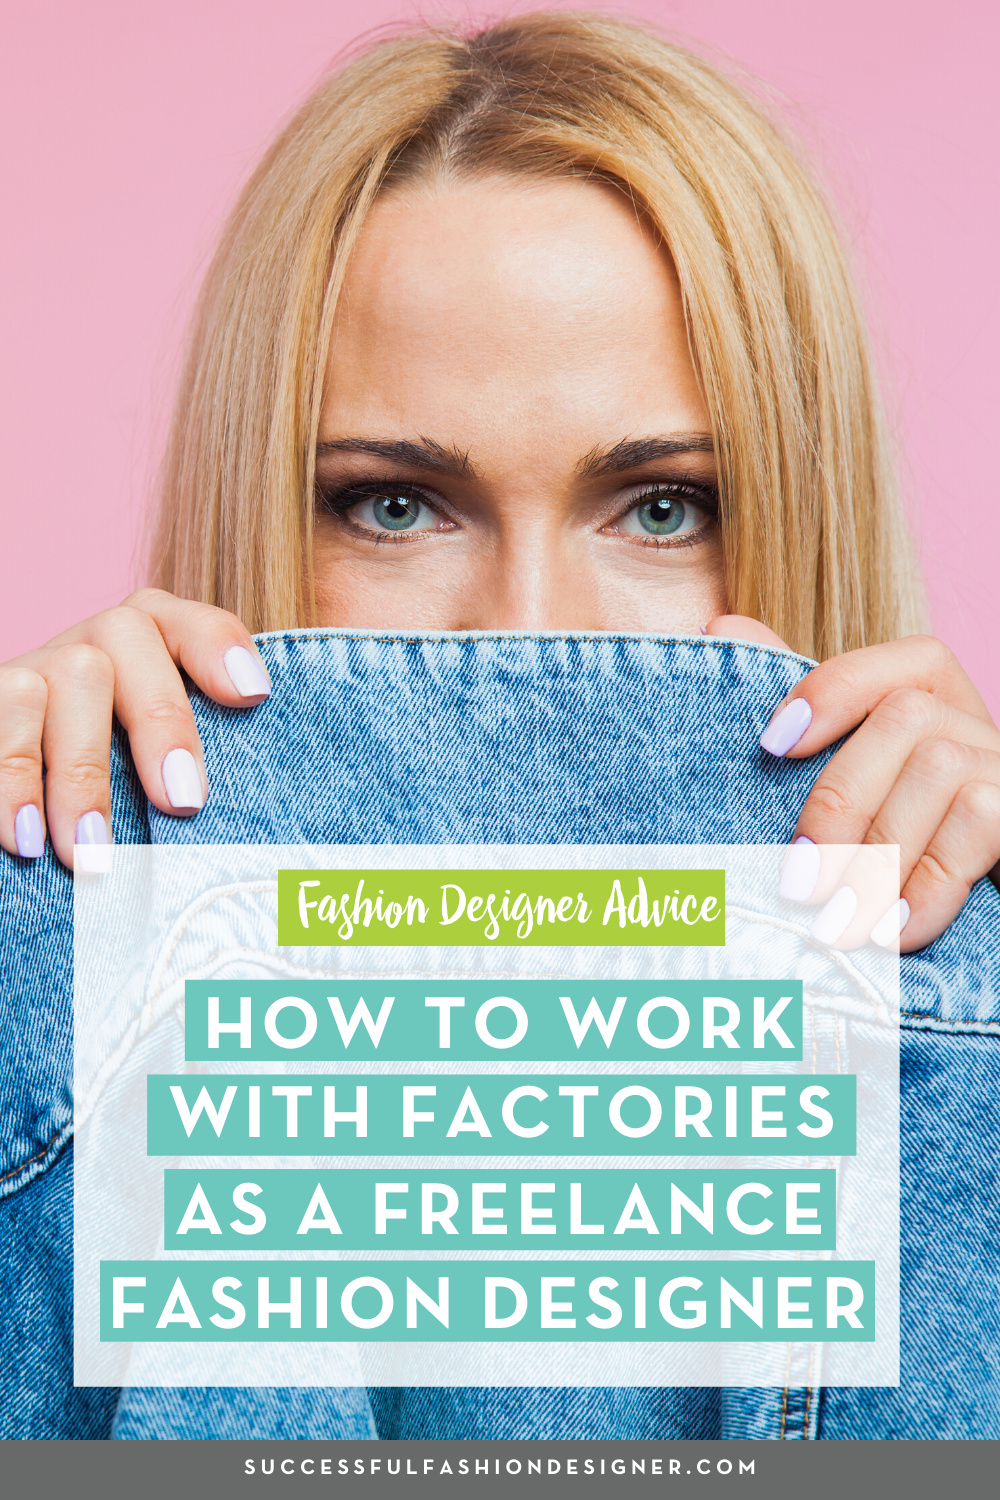 Freelance Fashion Designer How To Work With Factories In 2020 With Images Fashion Design Jobs Career In Fashion Designing Fashion Design Portfolio